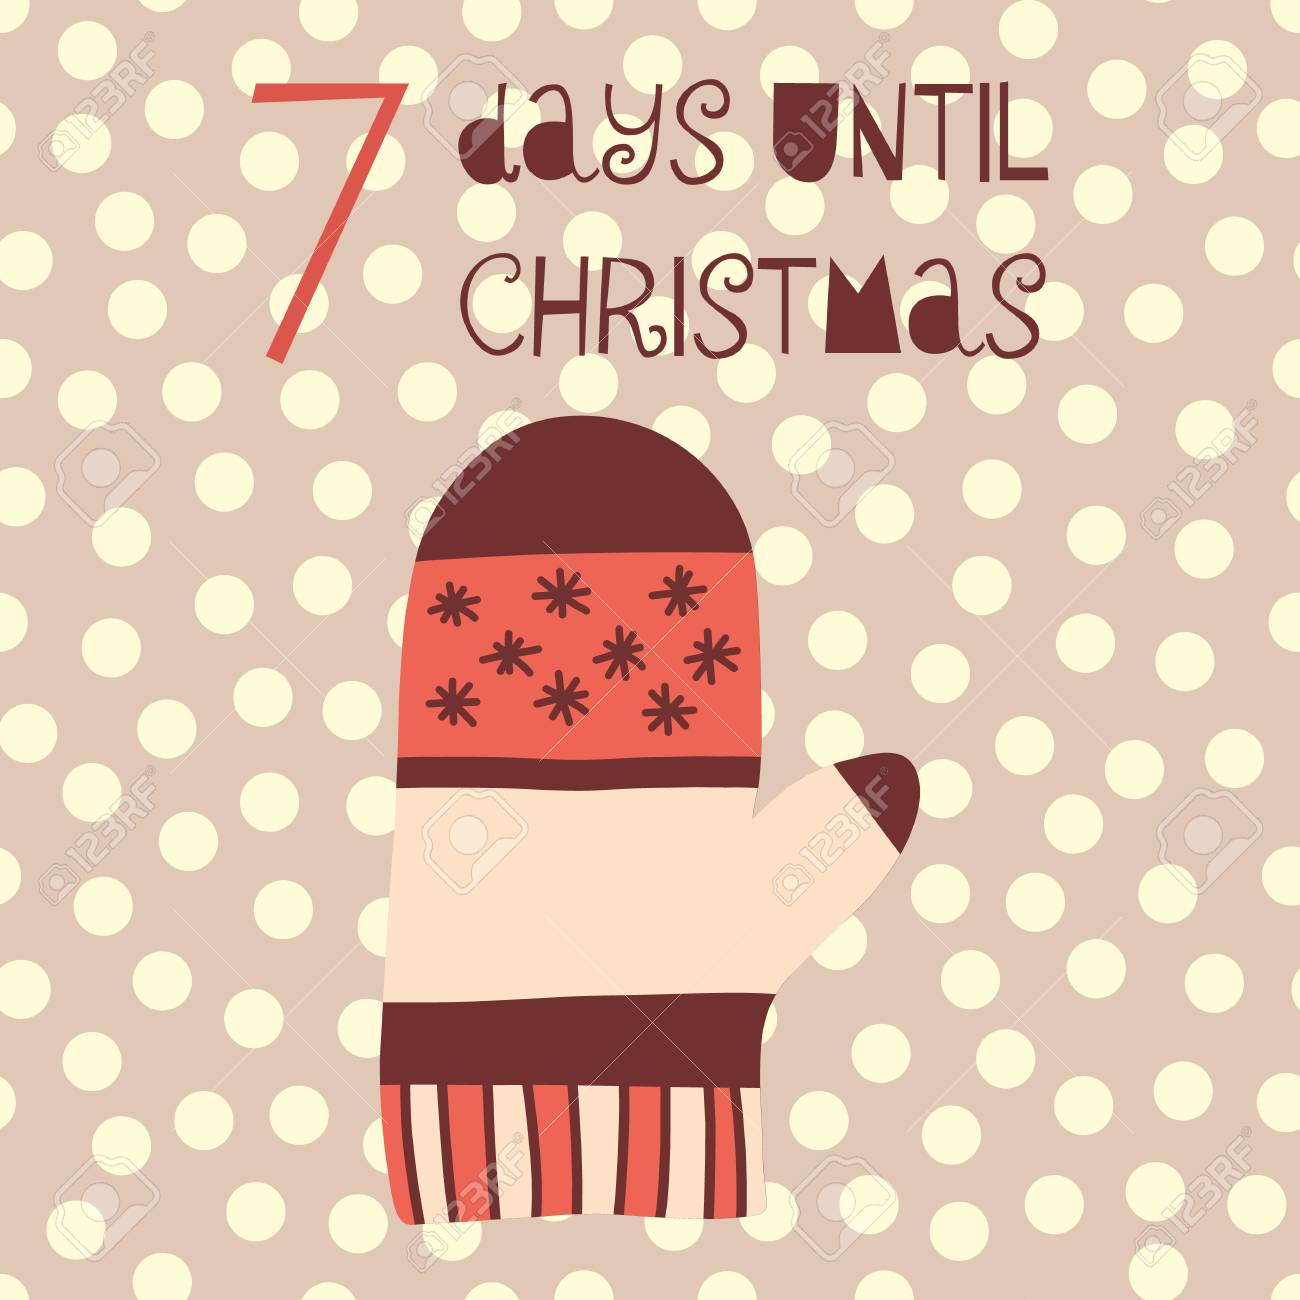 Days Until Christmas Countdown.7 Days Until Christmas Vector Illustration Christmas Countdown